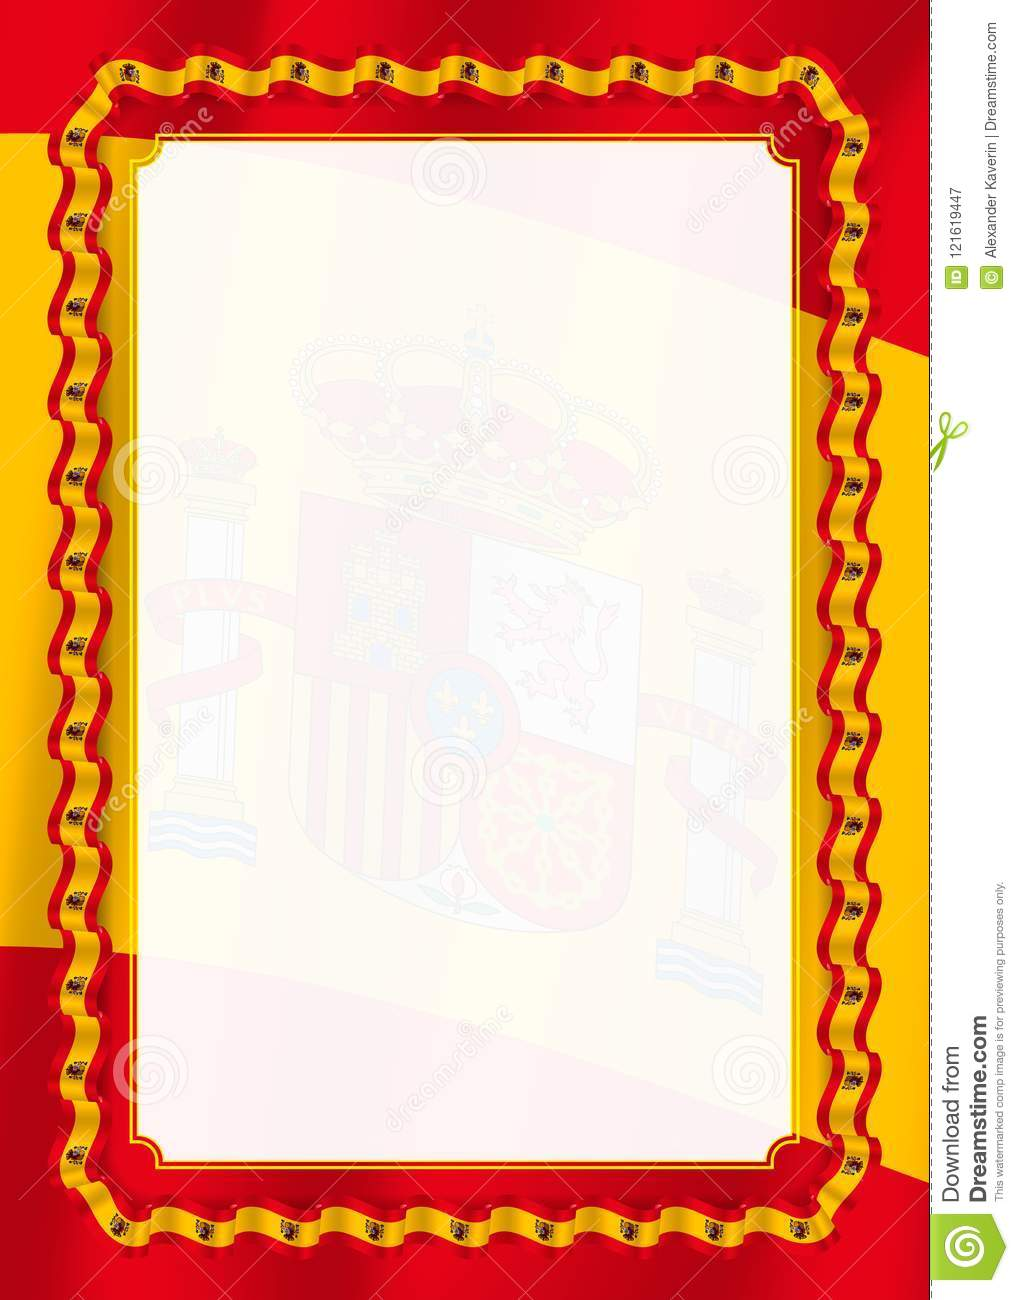 frame and border of ribbon with spain flag  template elements for your certificate and diploma